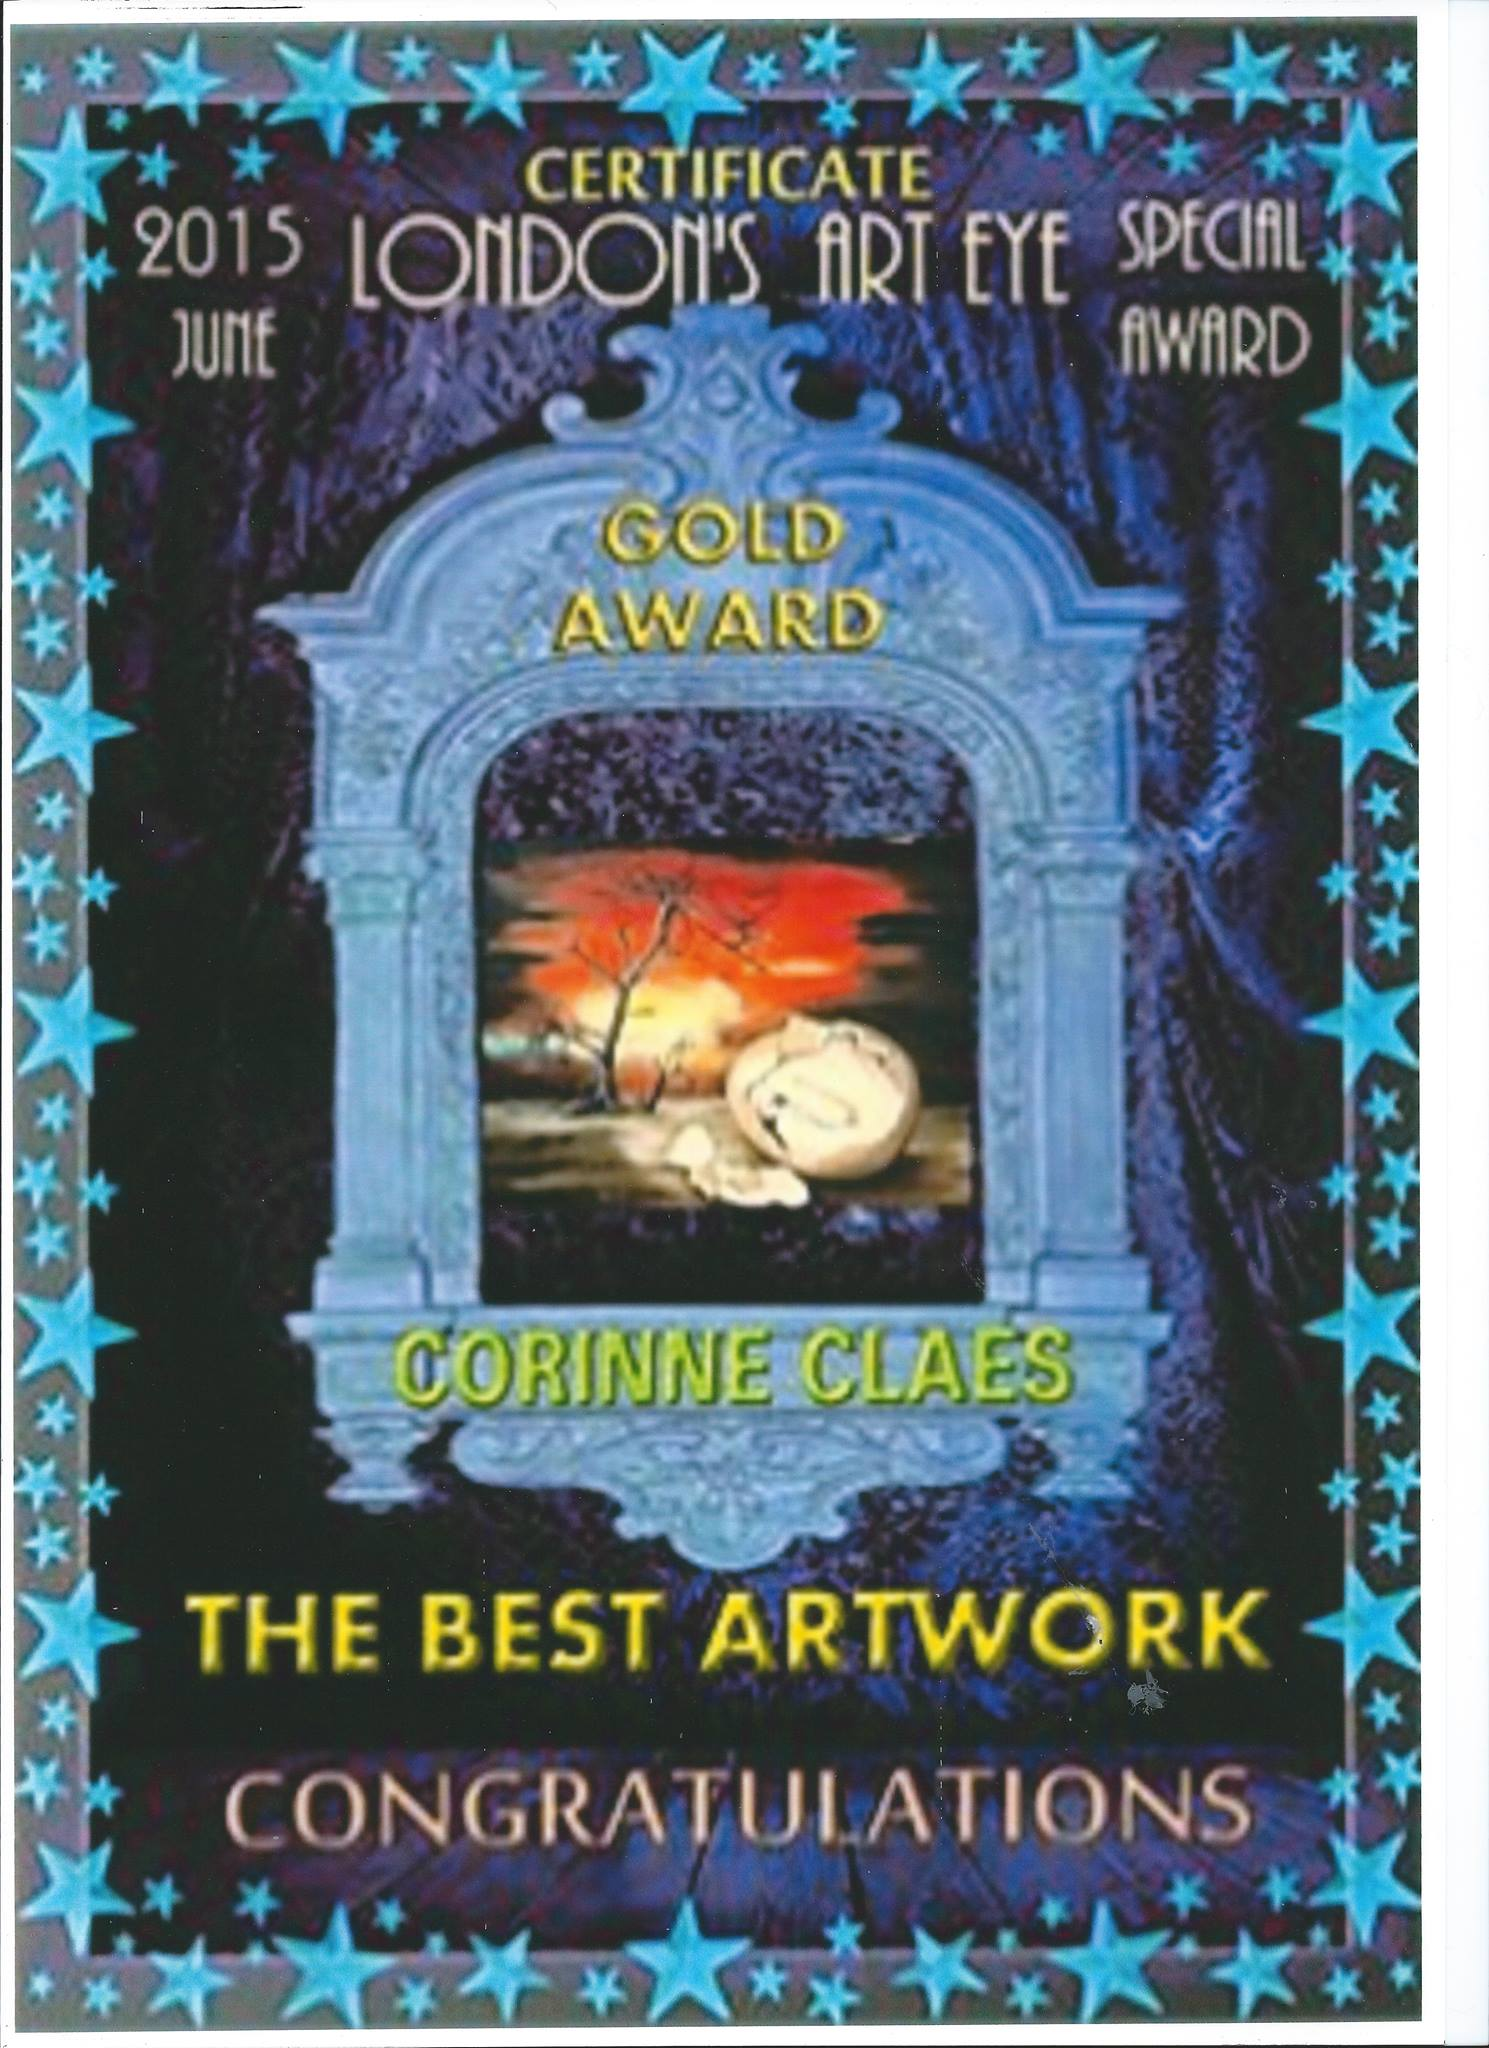 Best Artwork Certificate